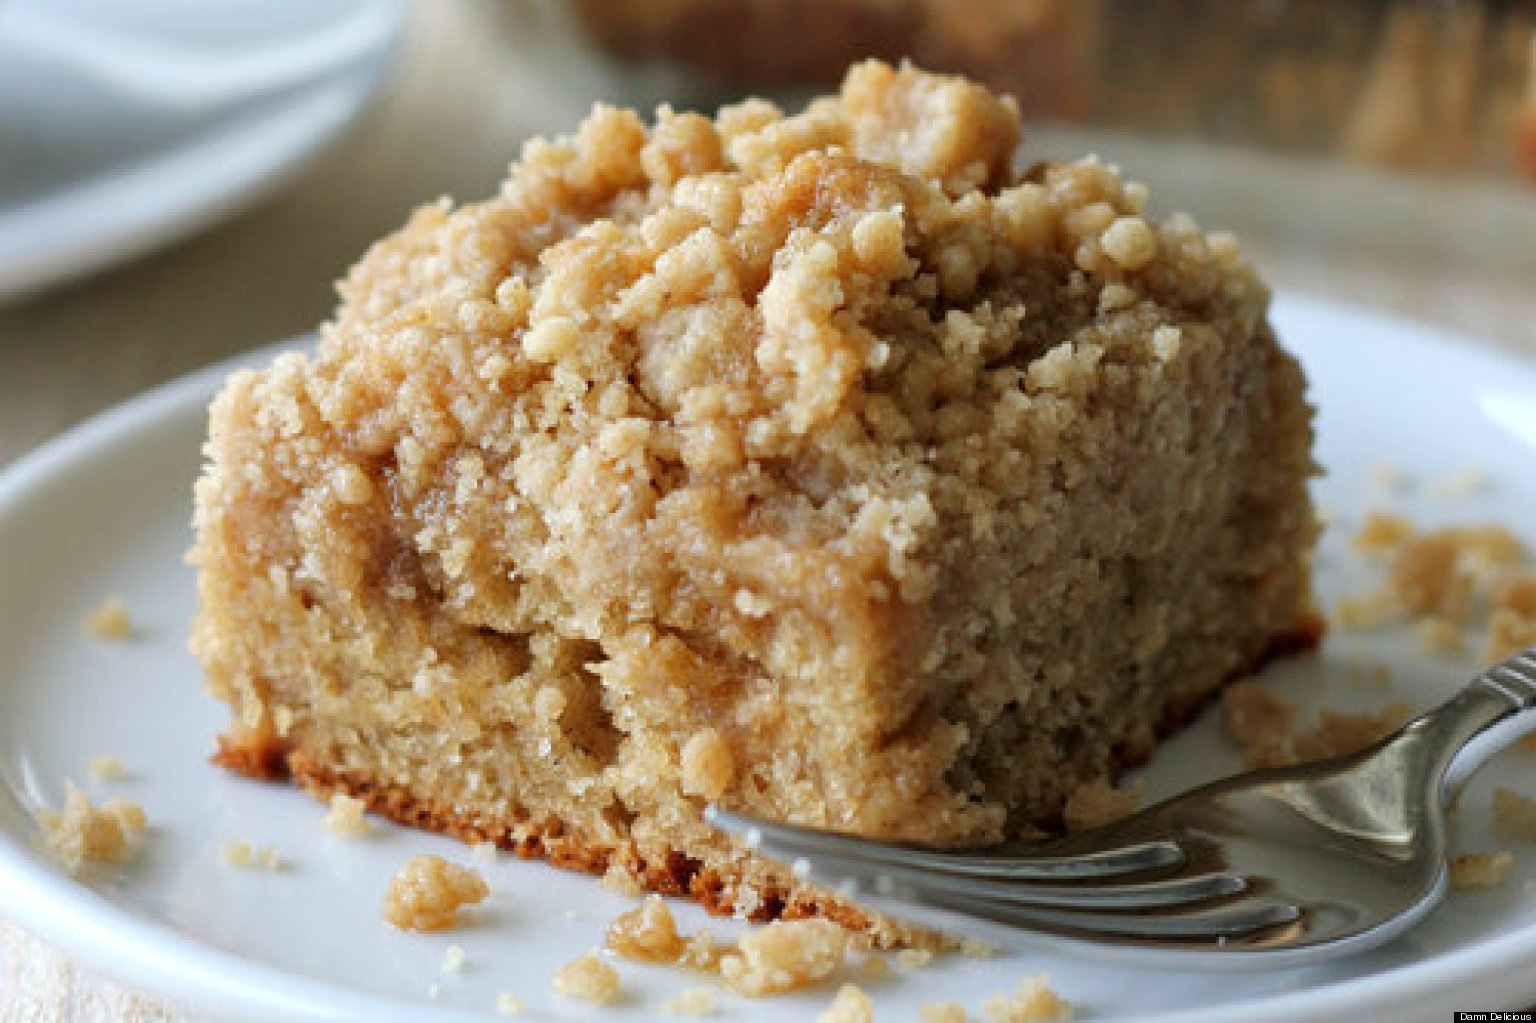 The Most Delicious Coffee Cake Recipes You'll Find (PHOTOS)